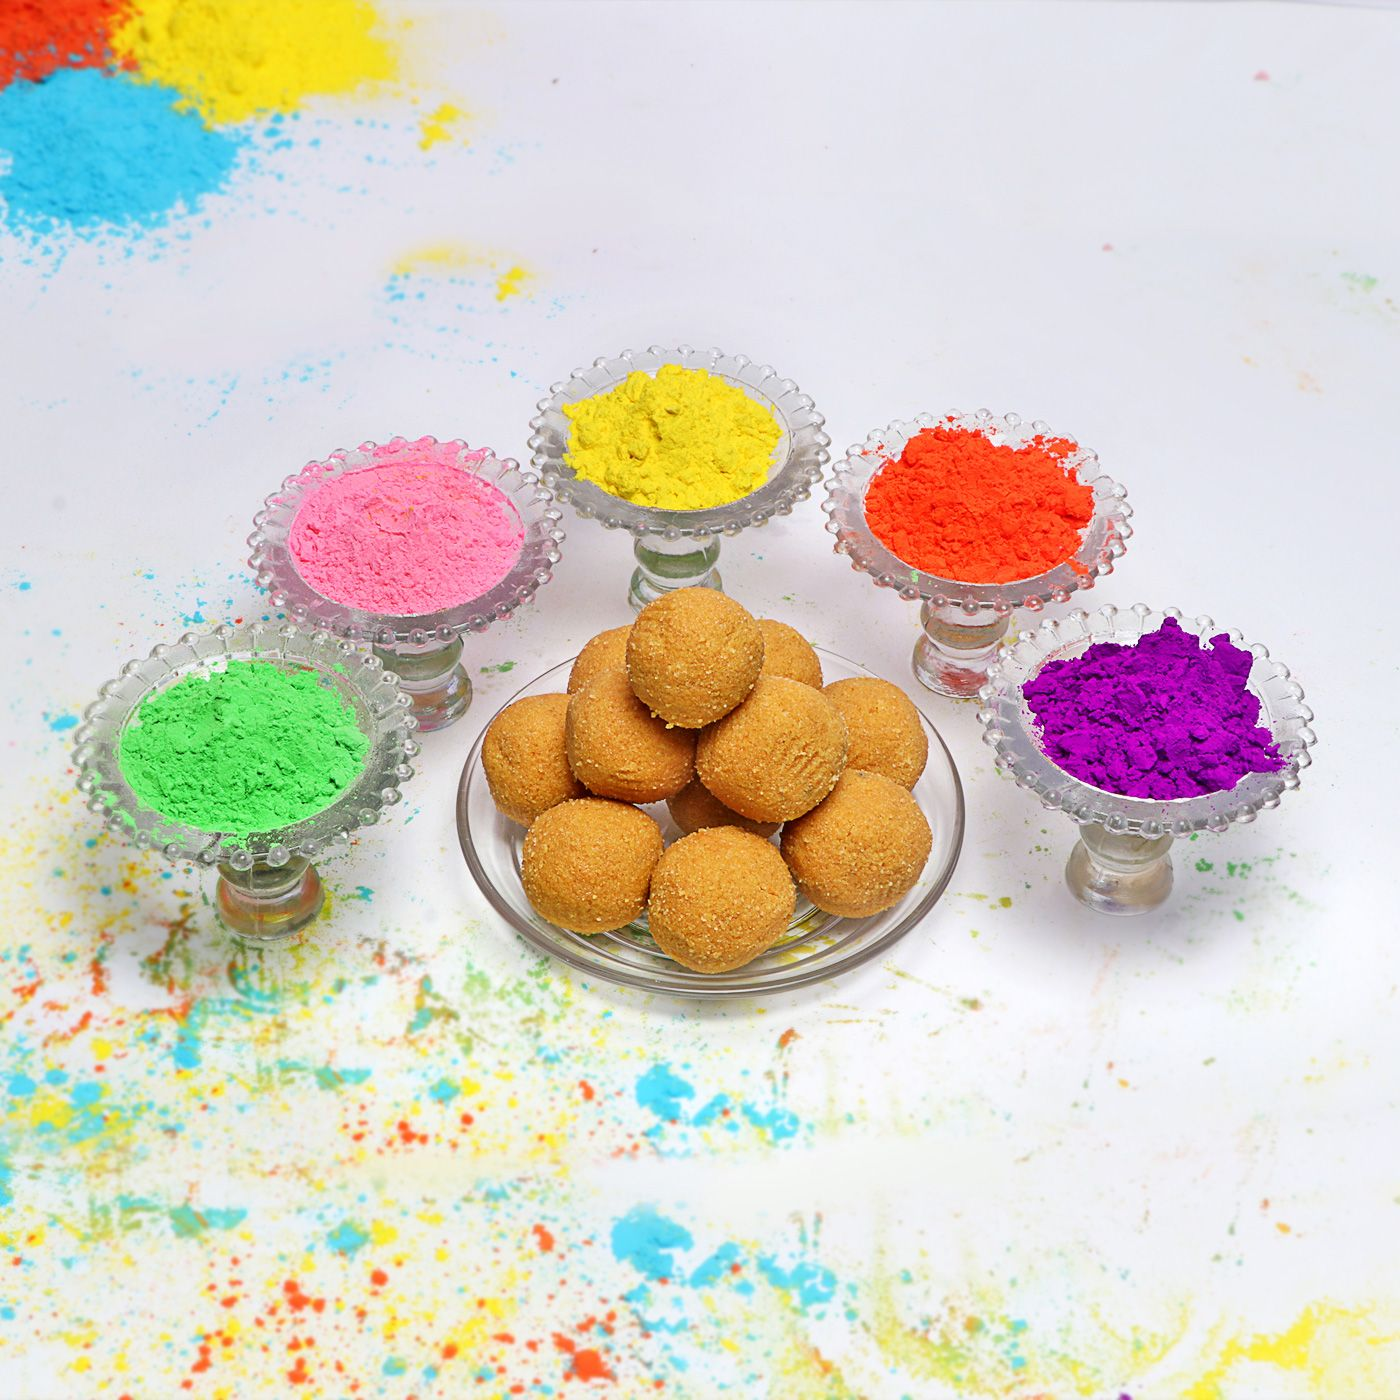 Create a stronger bond with loved ones; make new friends with gestures of love with this perfectly curated Holi hamper. #holi #happyholi #india #festival #holifestival #colors #colours #festivalofcolors #holifestivalofcolours #holihai #festivalofcolours #indianfestival #holiparty #rangbarse #celebrations #holipowder #holicelebration #colourful #holispecial #HoliGift #HoliGiftsForChildrens #GiftsForHoli #HoliGiftsForEvevryone #HoliGulal #HoliGujiya #Gujiya #GujiyaGift #HoliGiftGujiya #GujiyaLove